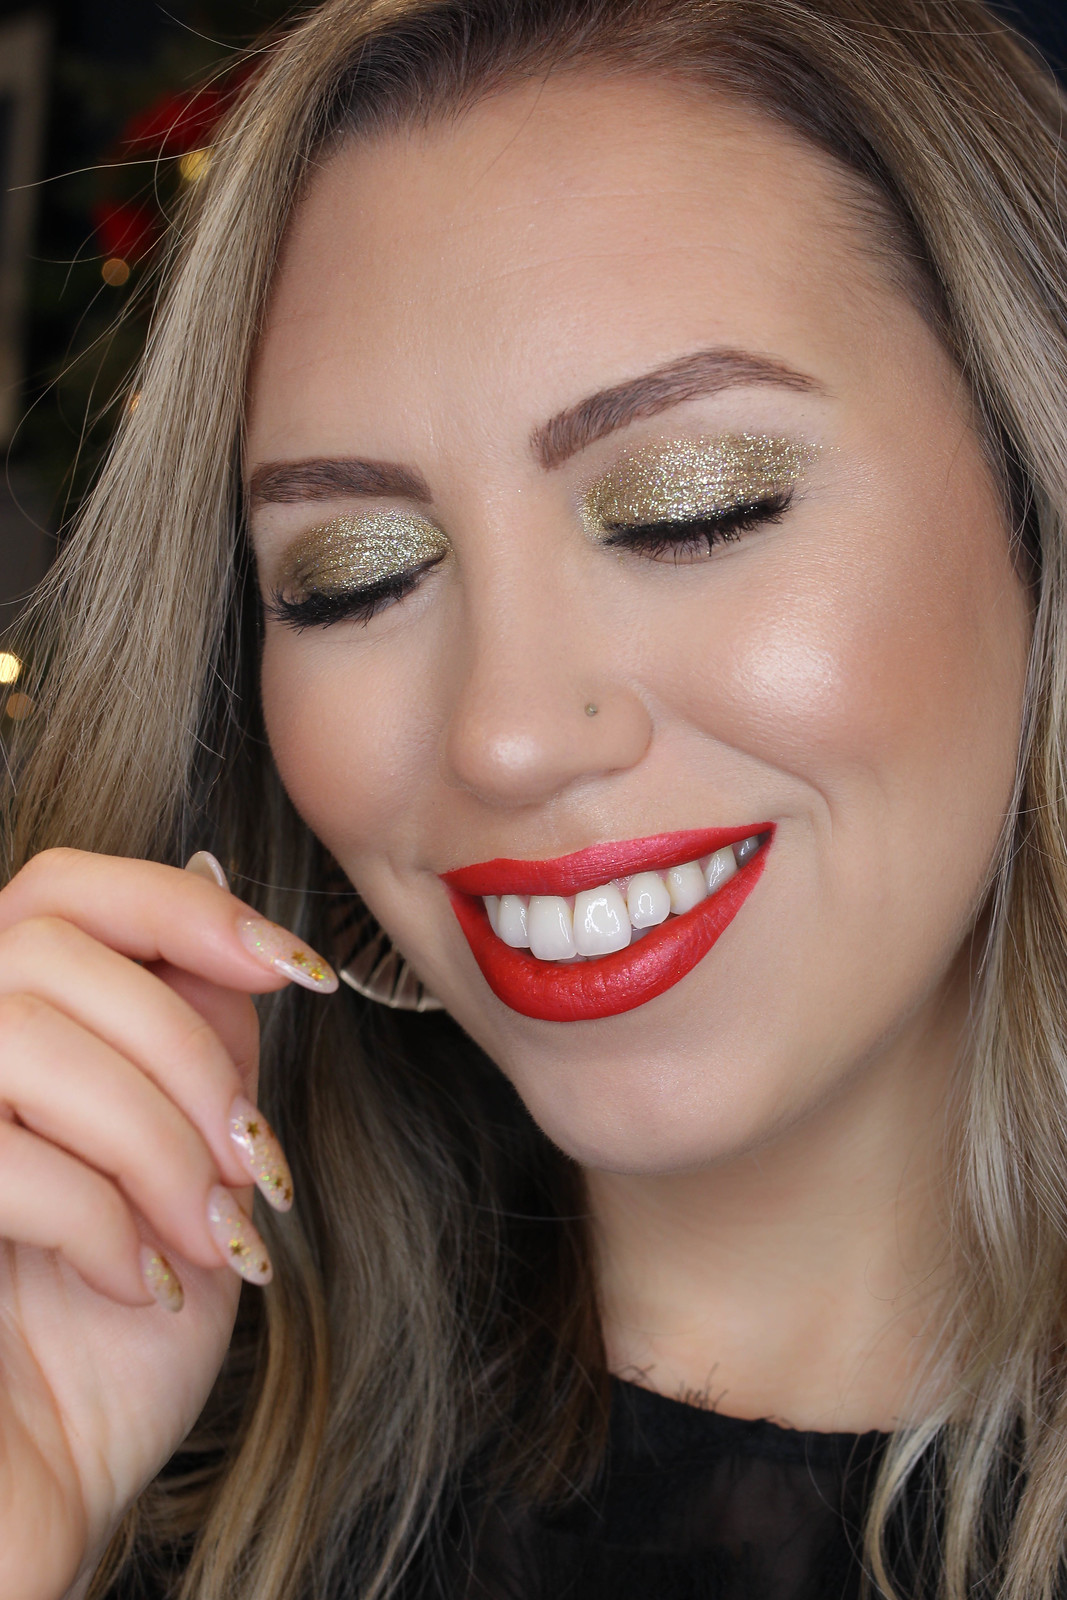 DOUBLE CUT CREASE + GOLD GLITTER IN CREASE Makeup Tutorial